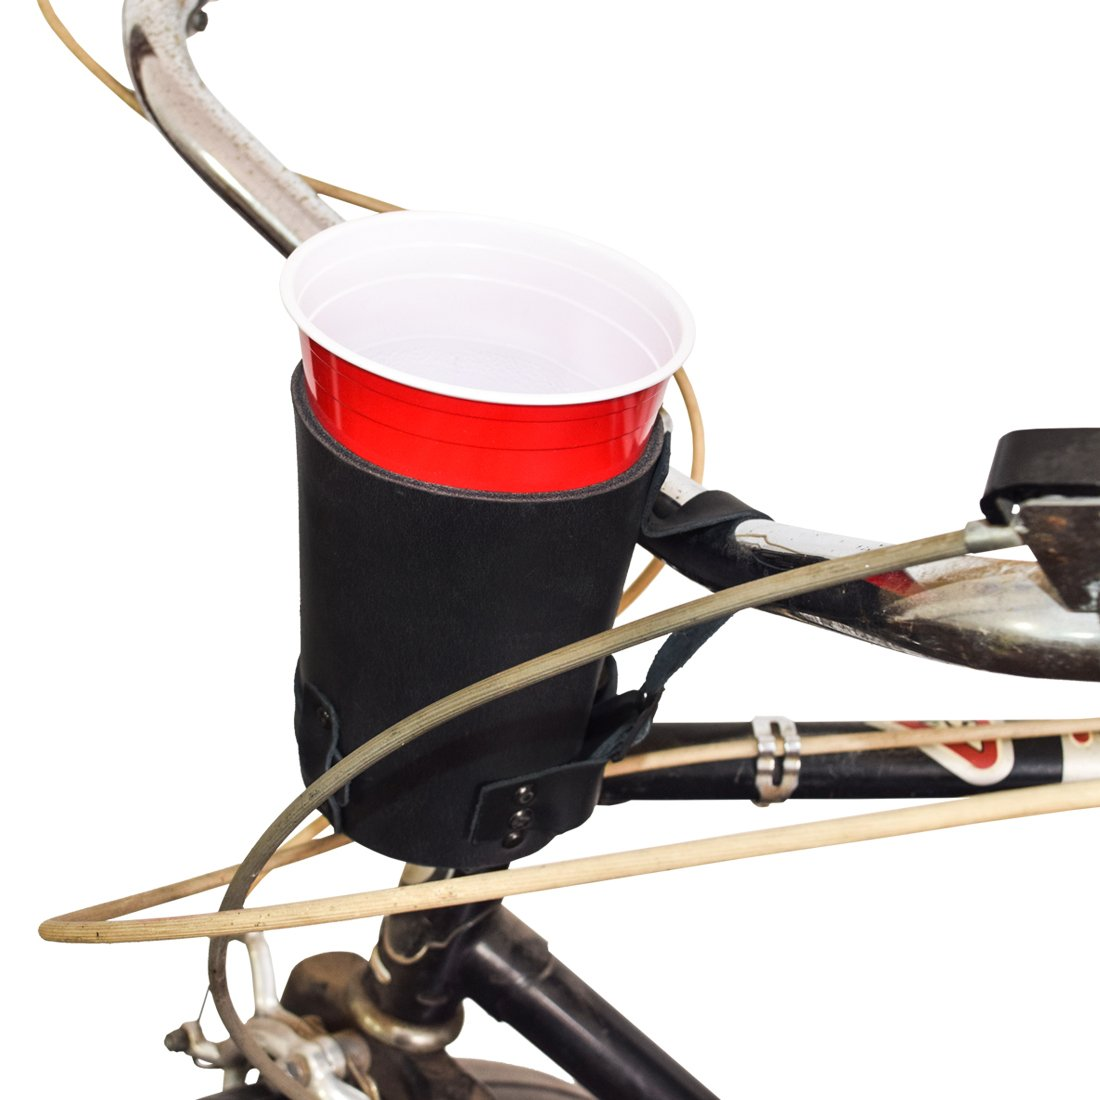 Cruzy Kuzy Thick Leather Bike Cup Holder Handmade by Hide & Drink :: Charcoal Black